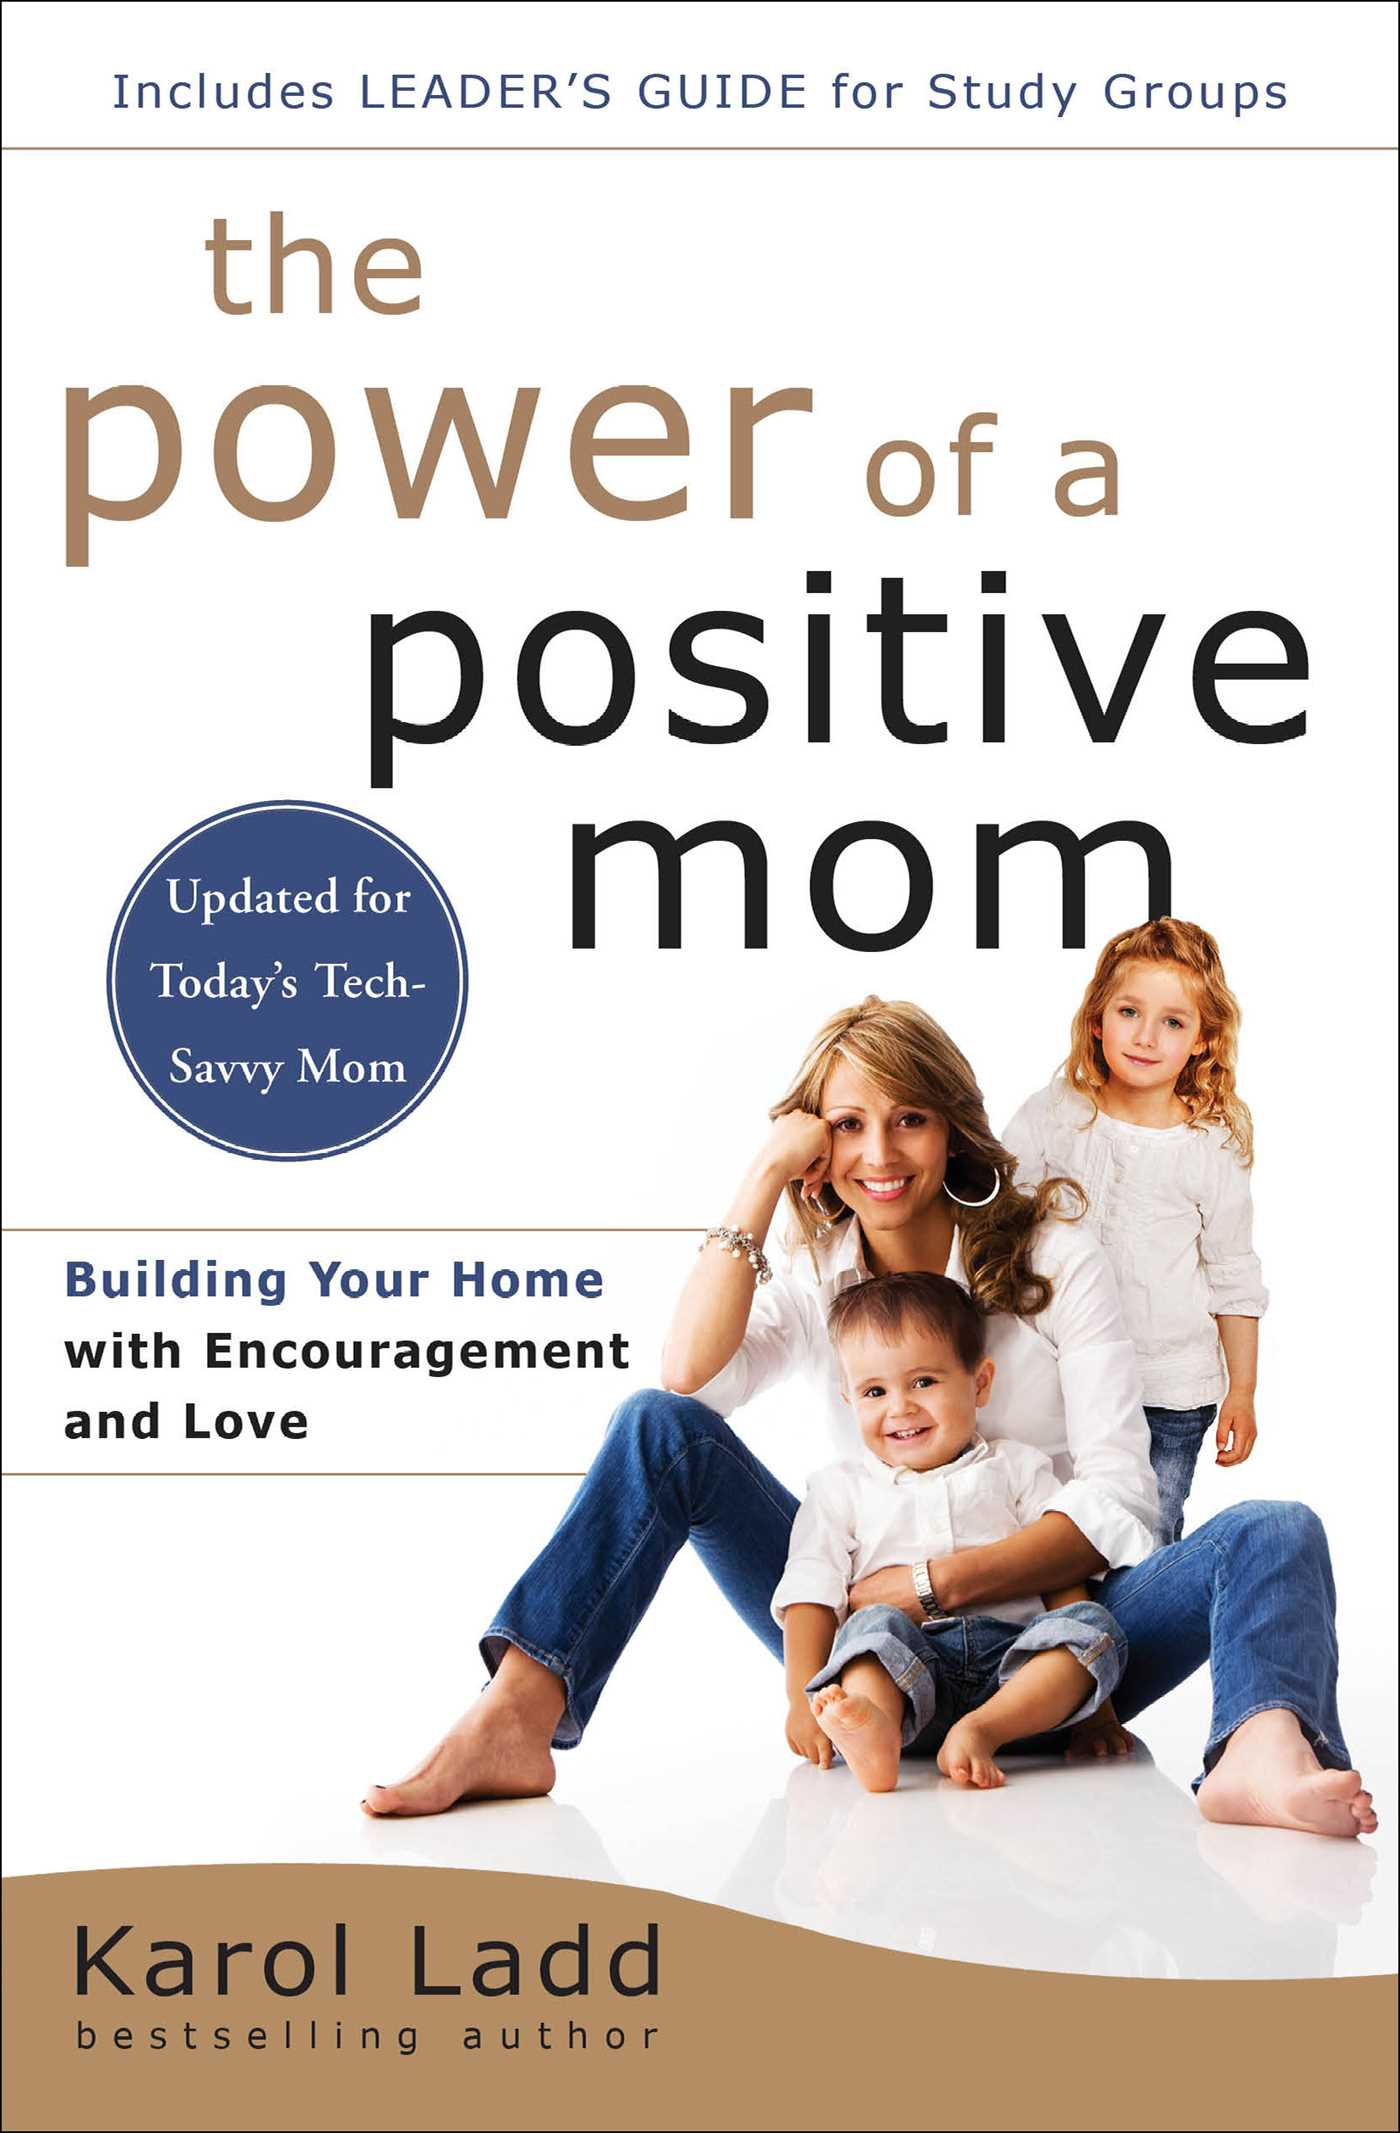 Power-of-a-positive-mom-gift-9781439122716_hr